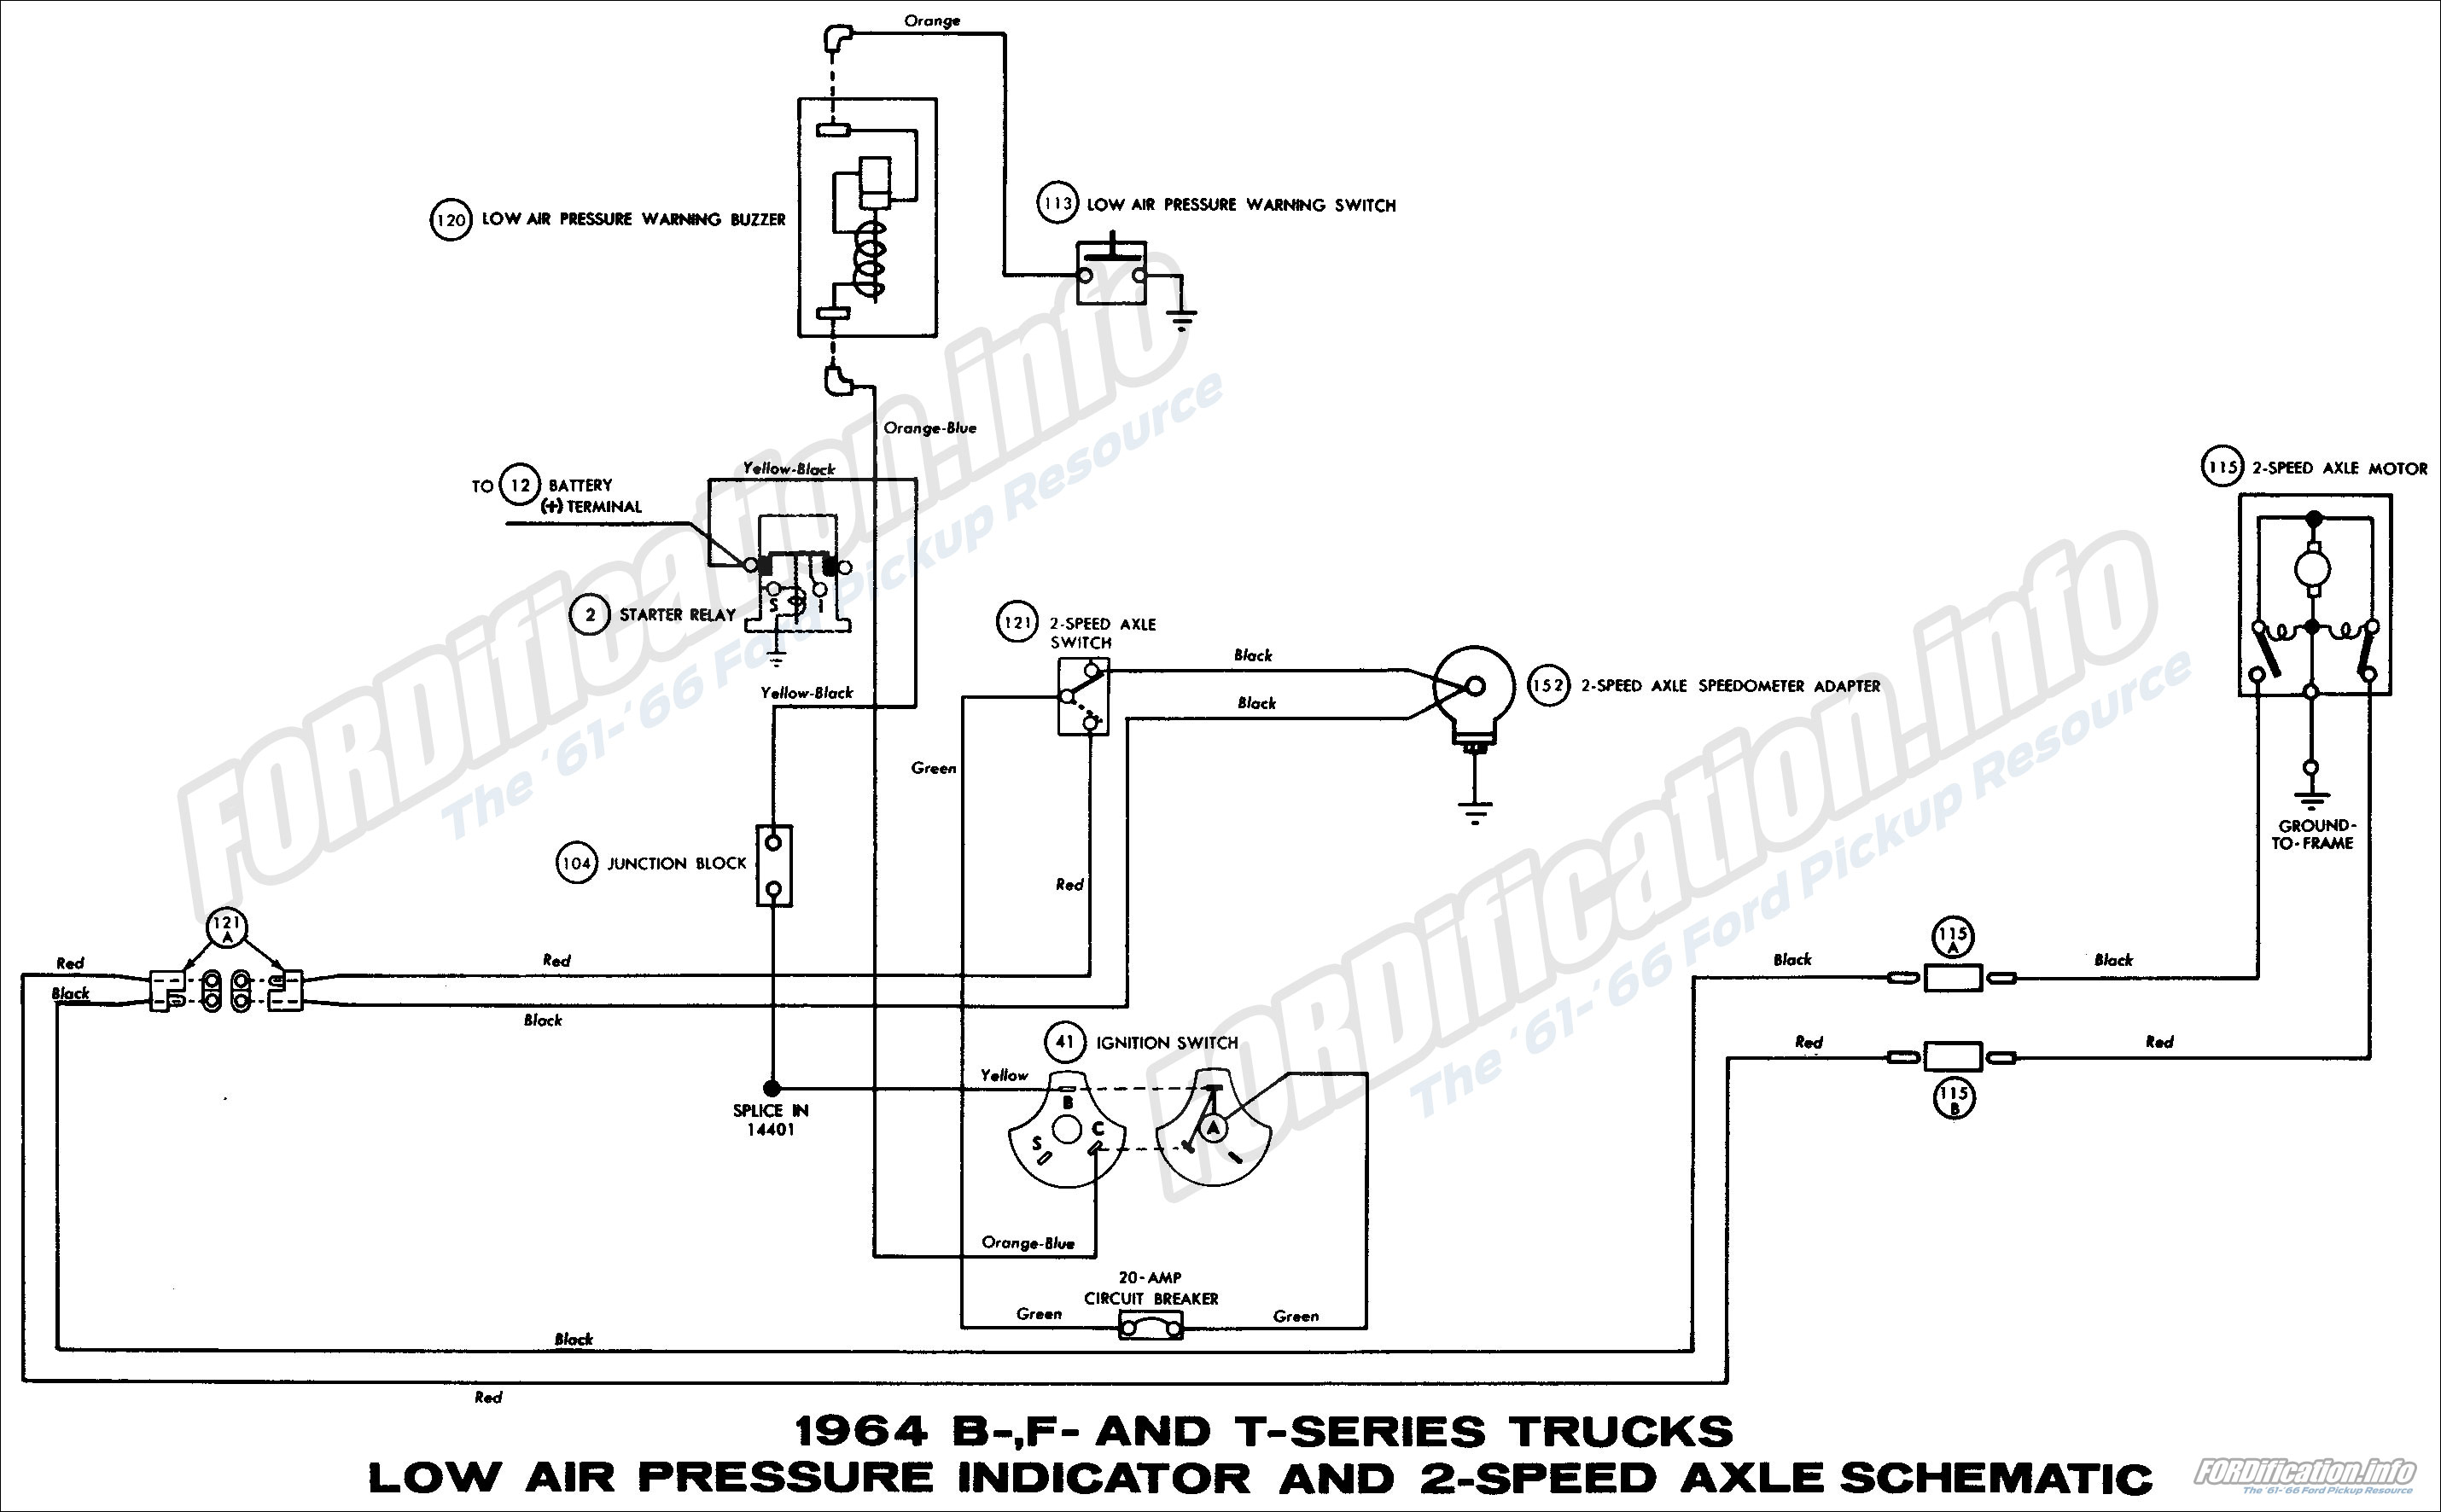 1964_17 1964 ford f100 wiring diagram 1966 ford truck wiring diagram fordification wiring diagram at gsmportal.co